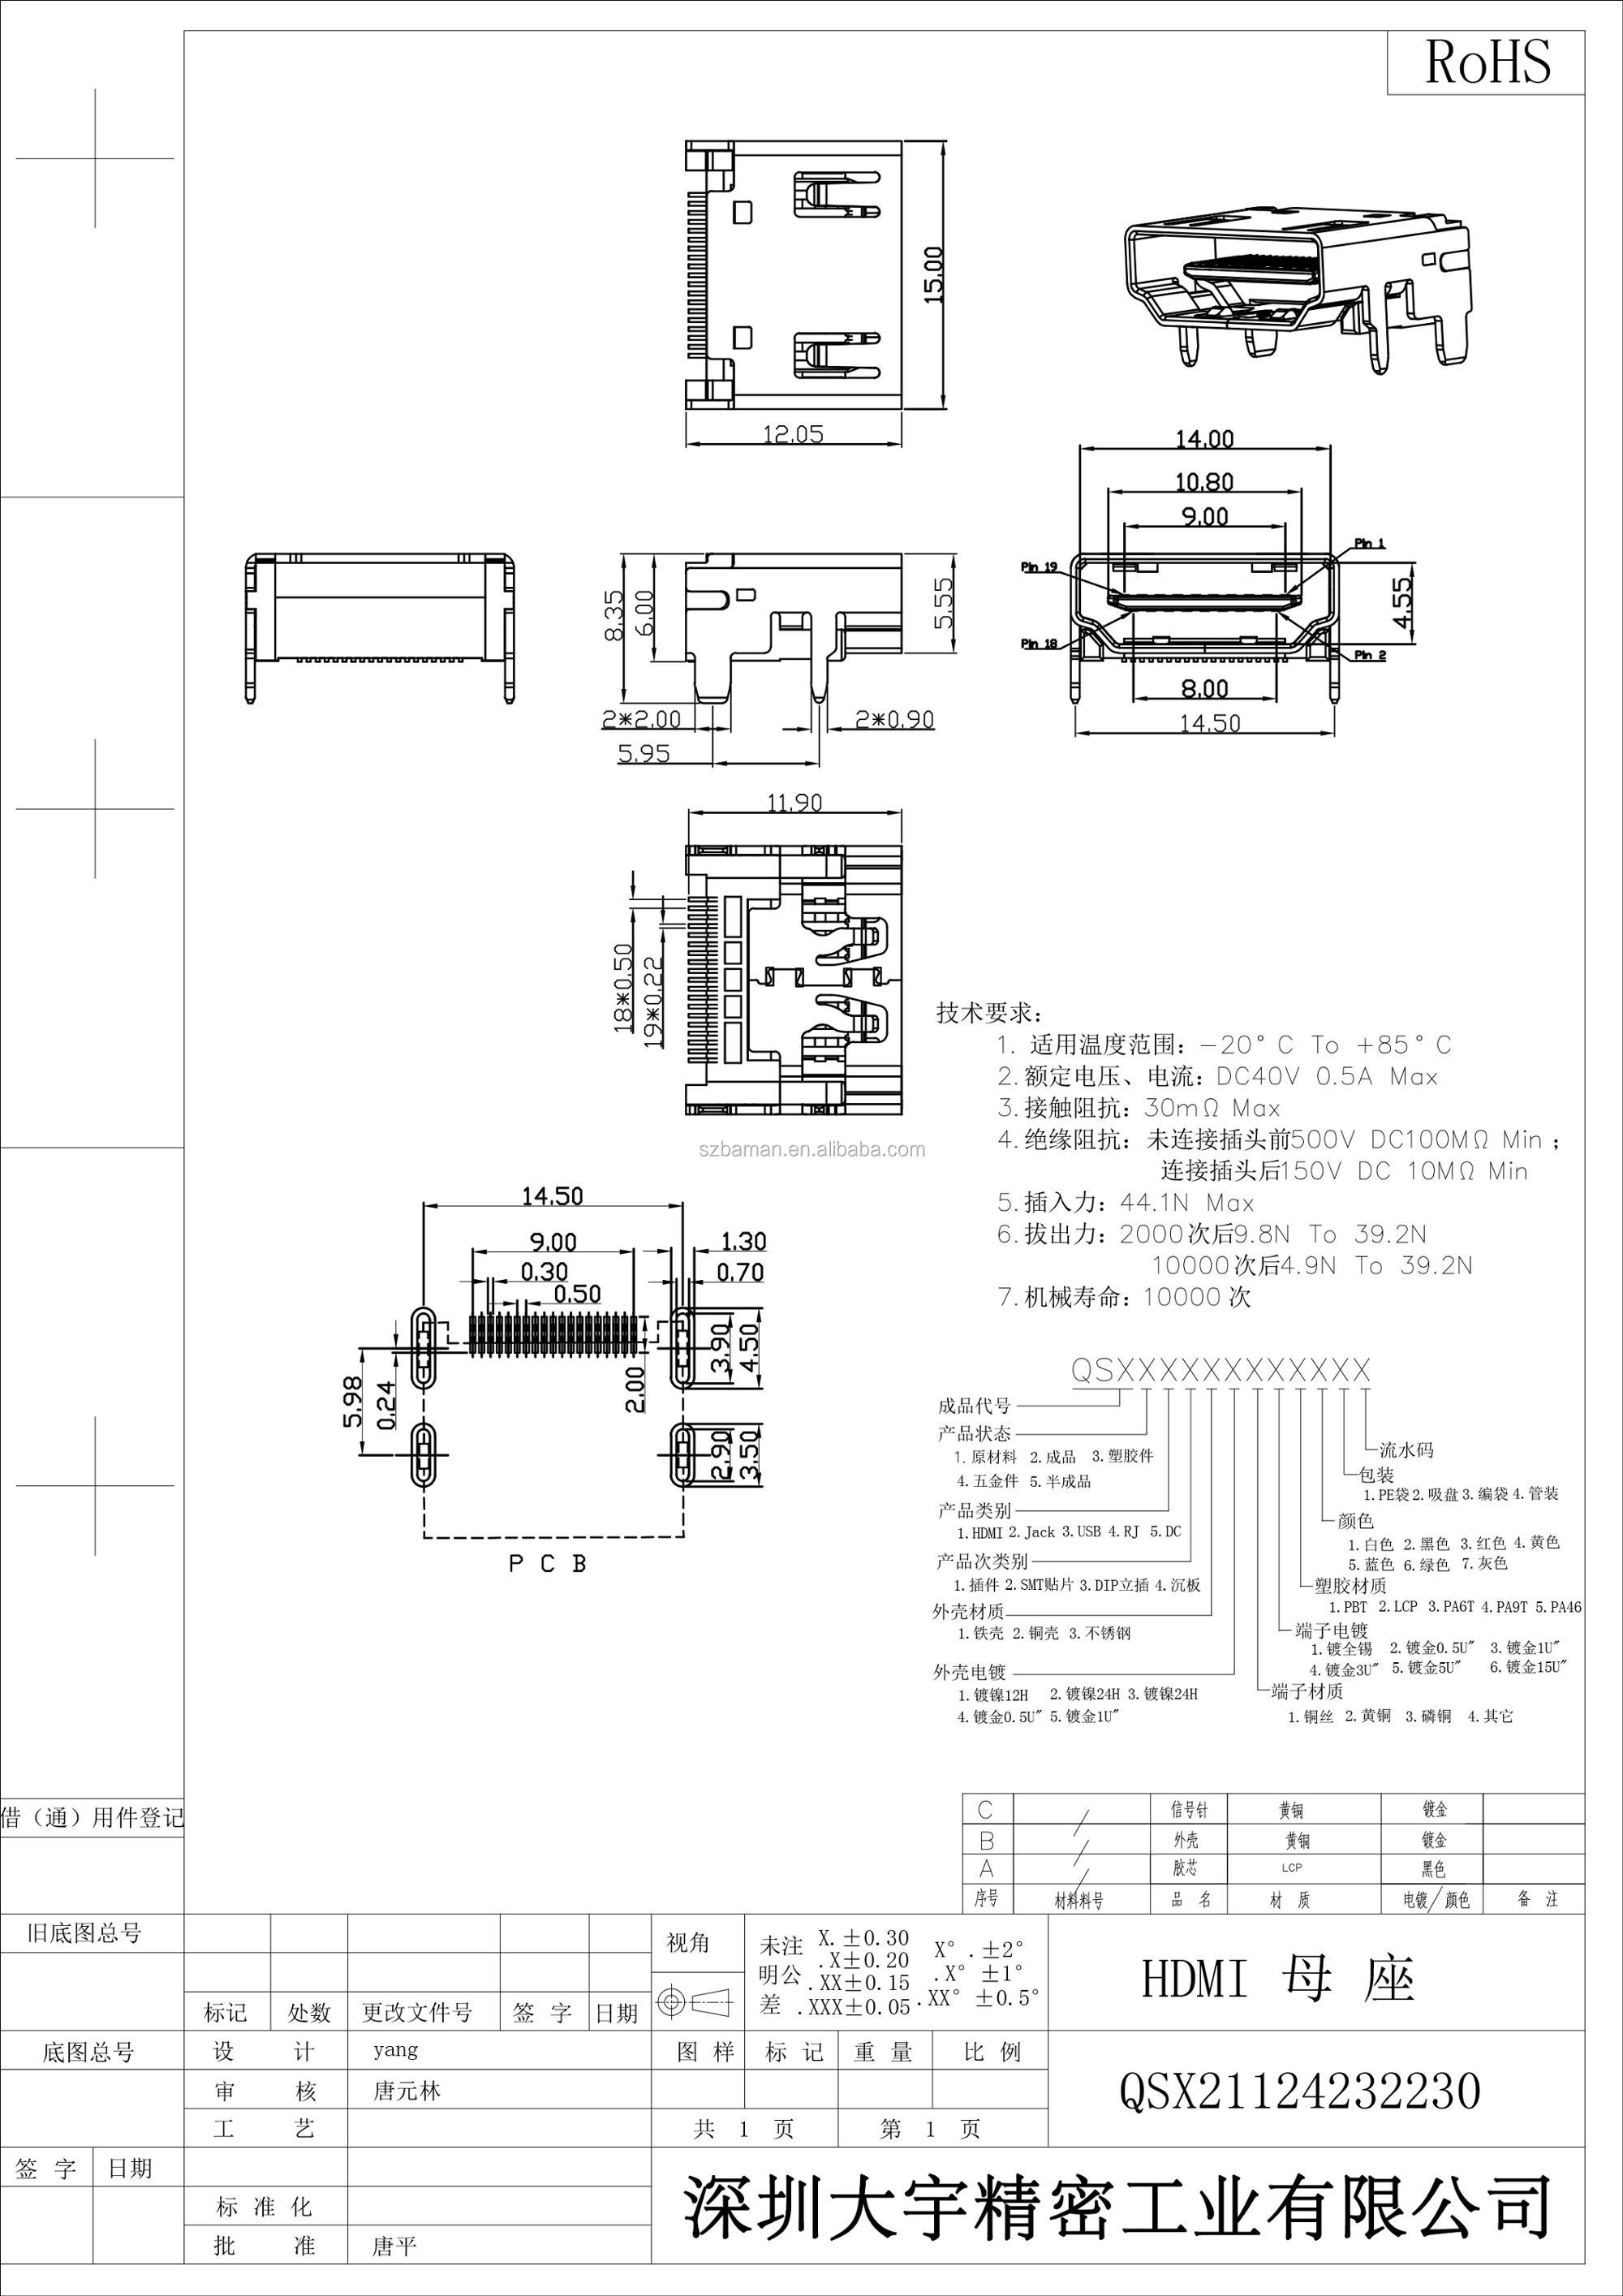 7 01850 Ignition Switch Wiring Diagram Detailed Diagrams Ldv Prime Color Codeignition Starter